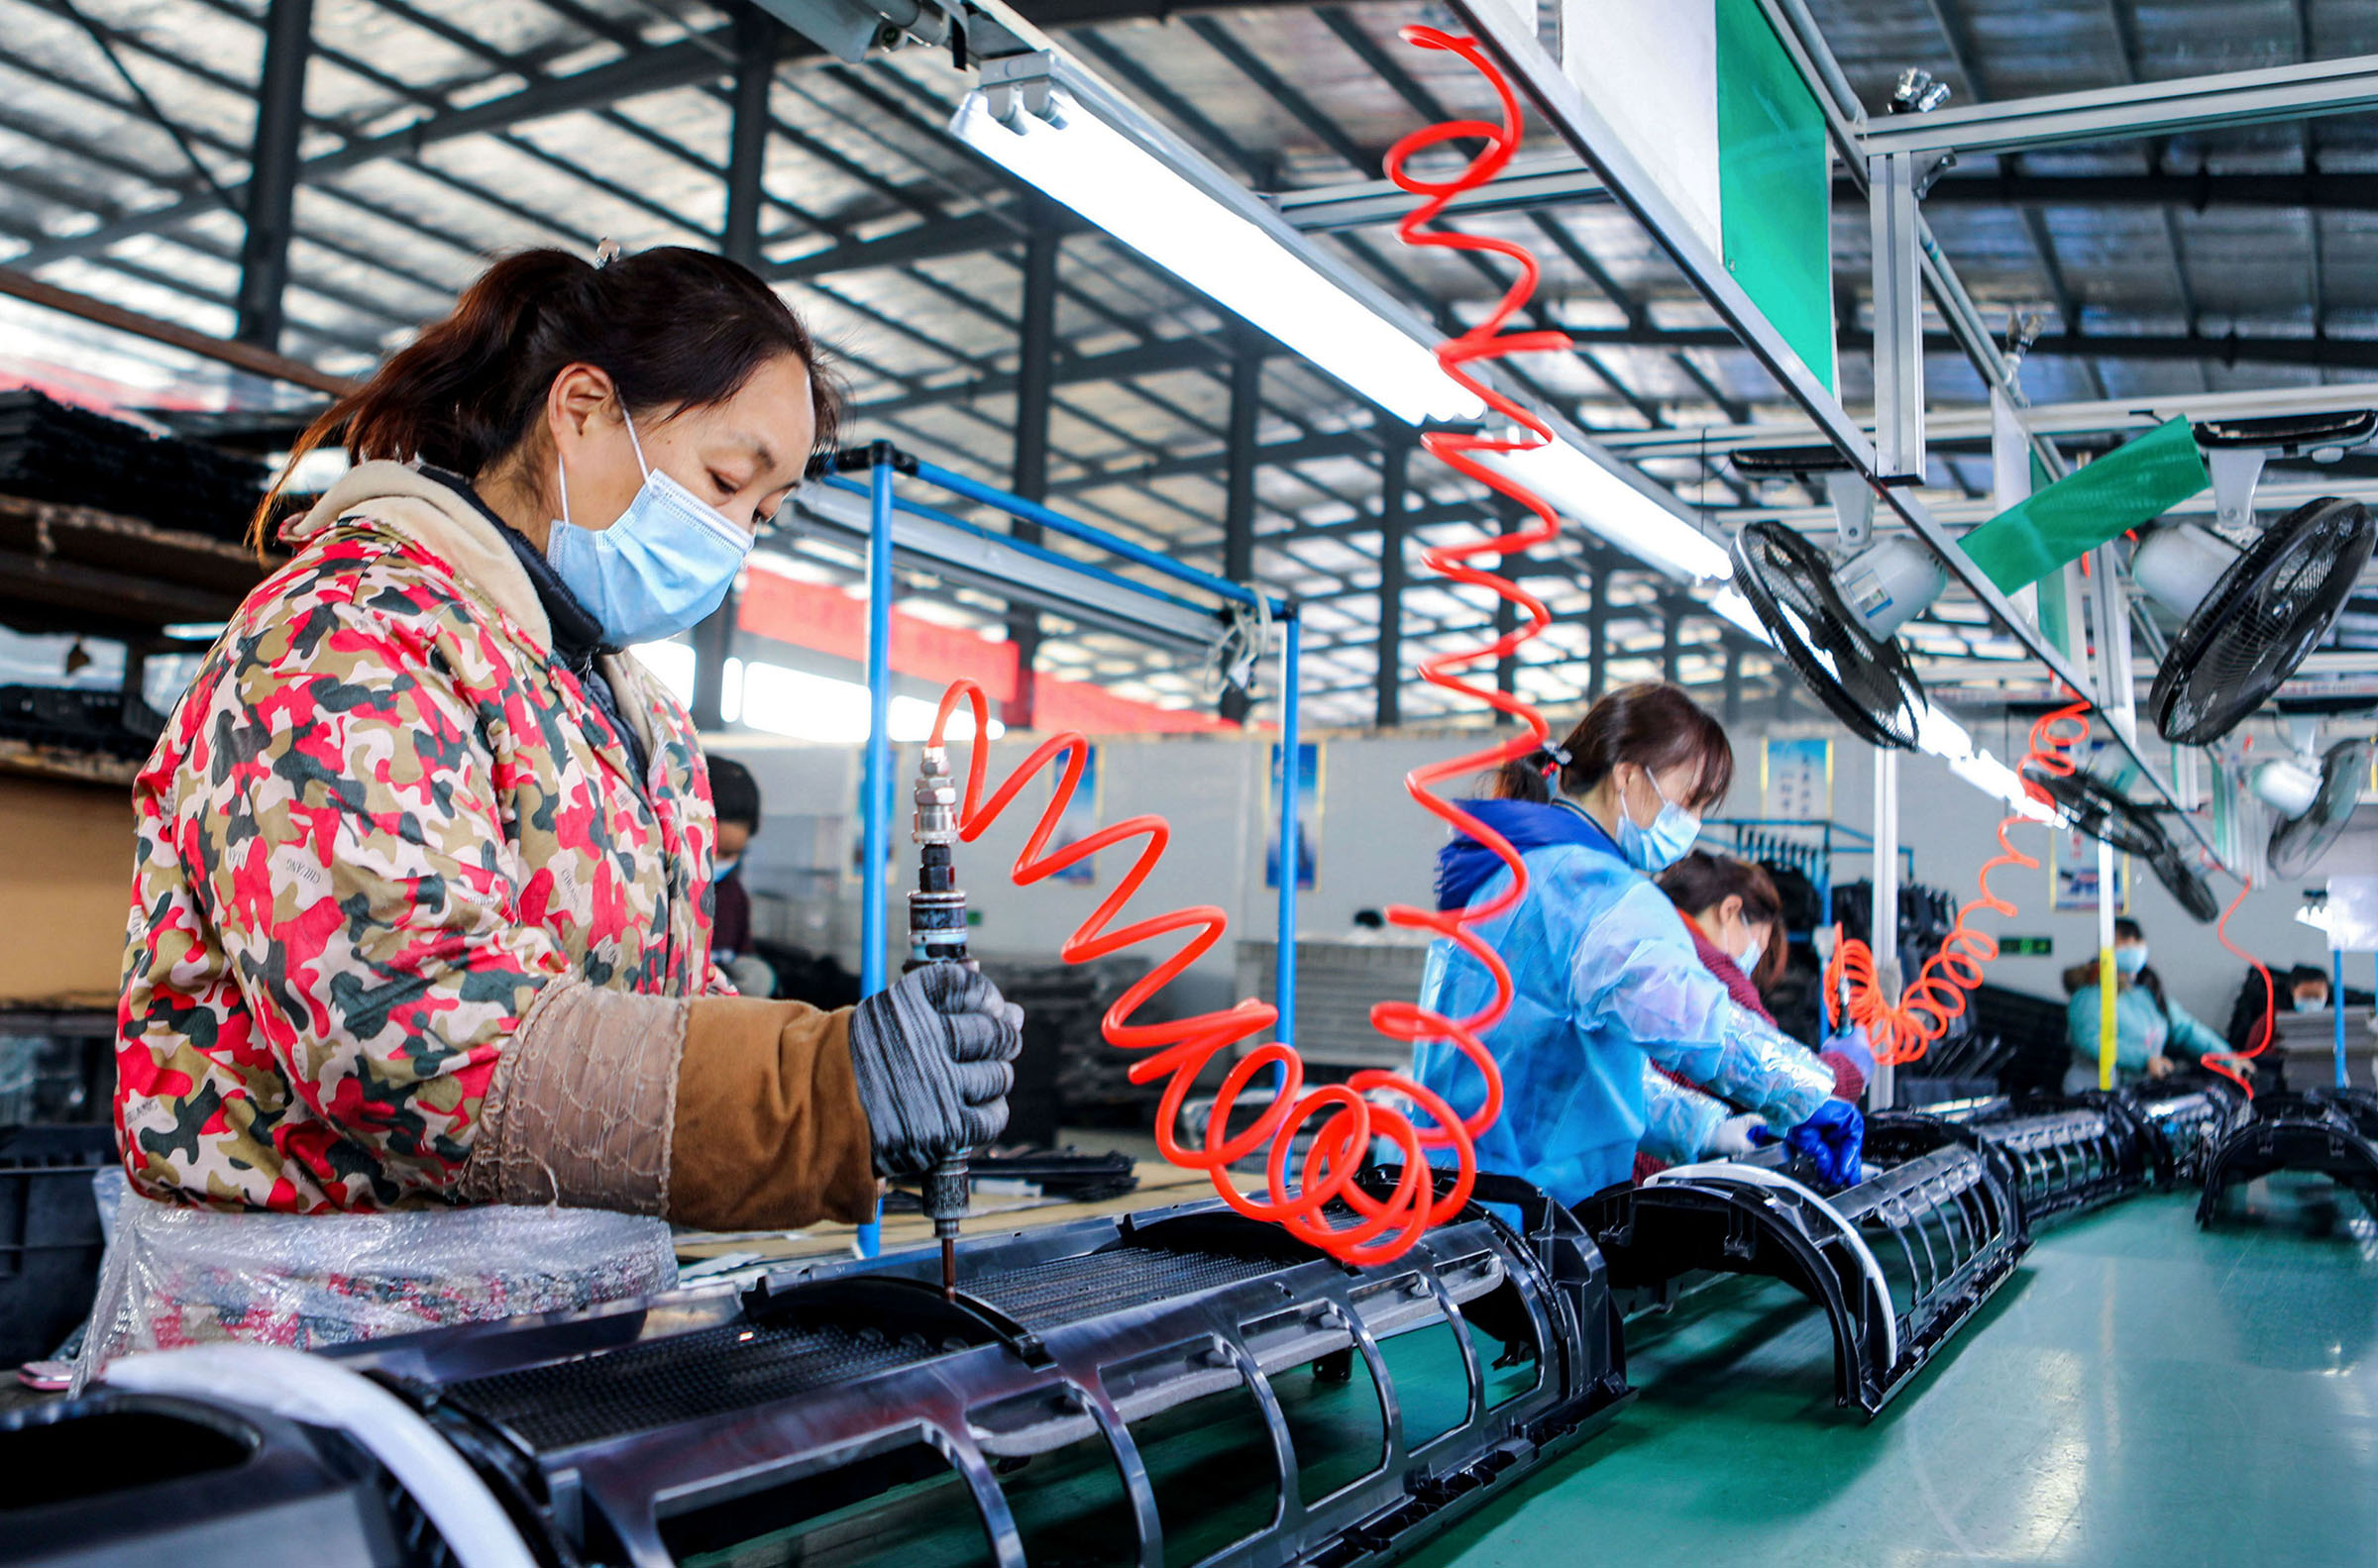 Workers at a plastic products company in Handan, in China's Hebei Province, on Feb. 25, 2020.